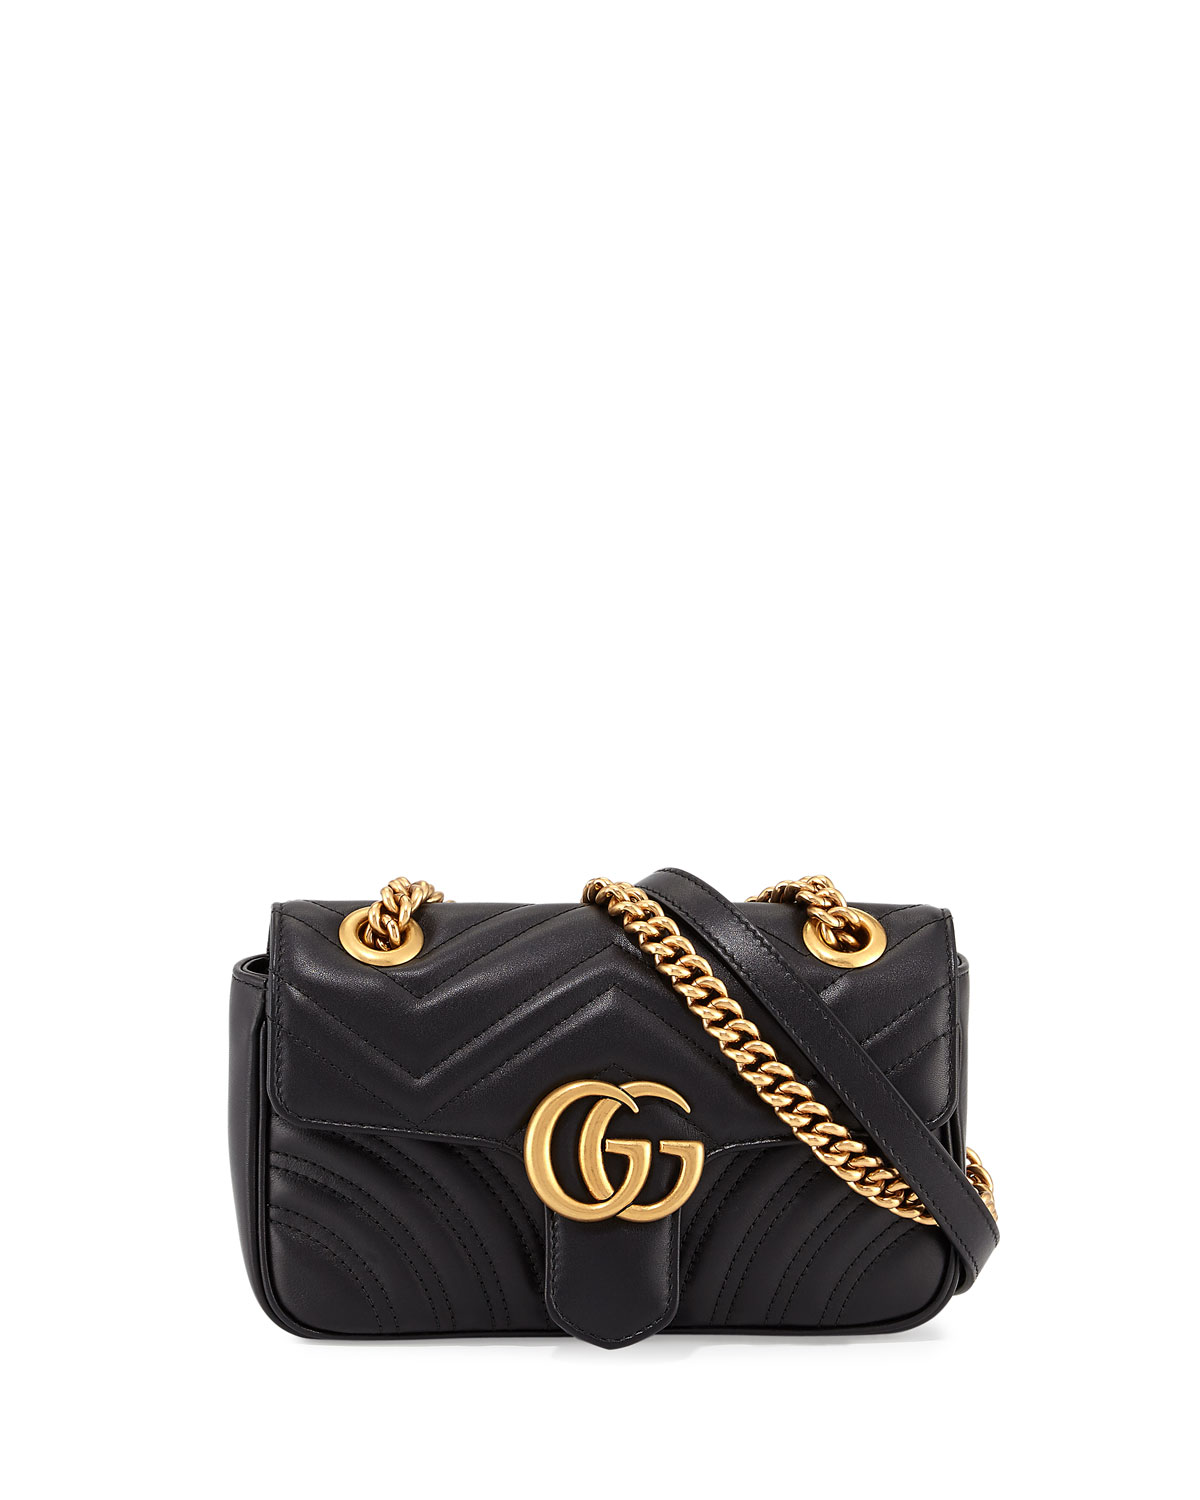 51d77d1a030d Gucci GG Marmont 2.0 Mini Quilted Leather Crossbody Bag, Black ...